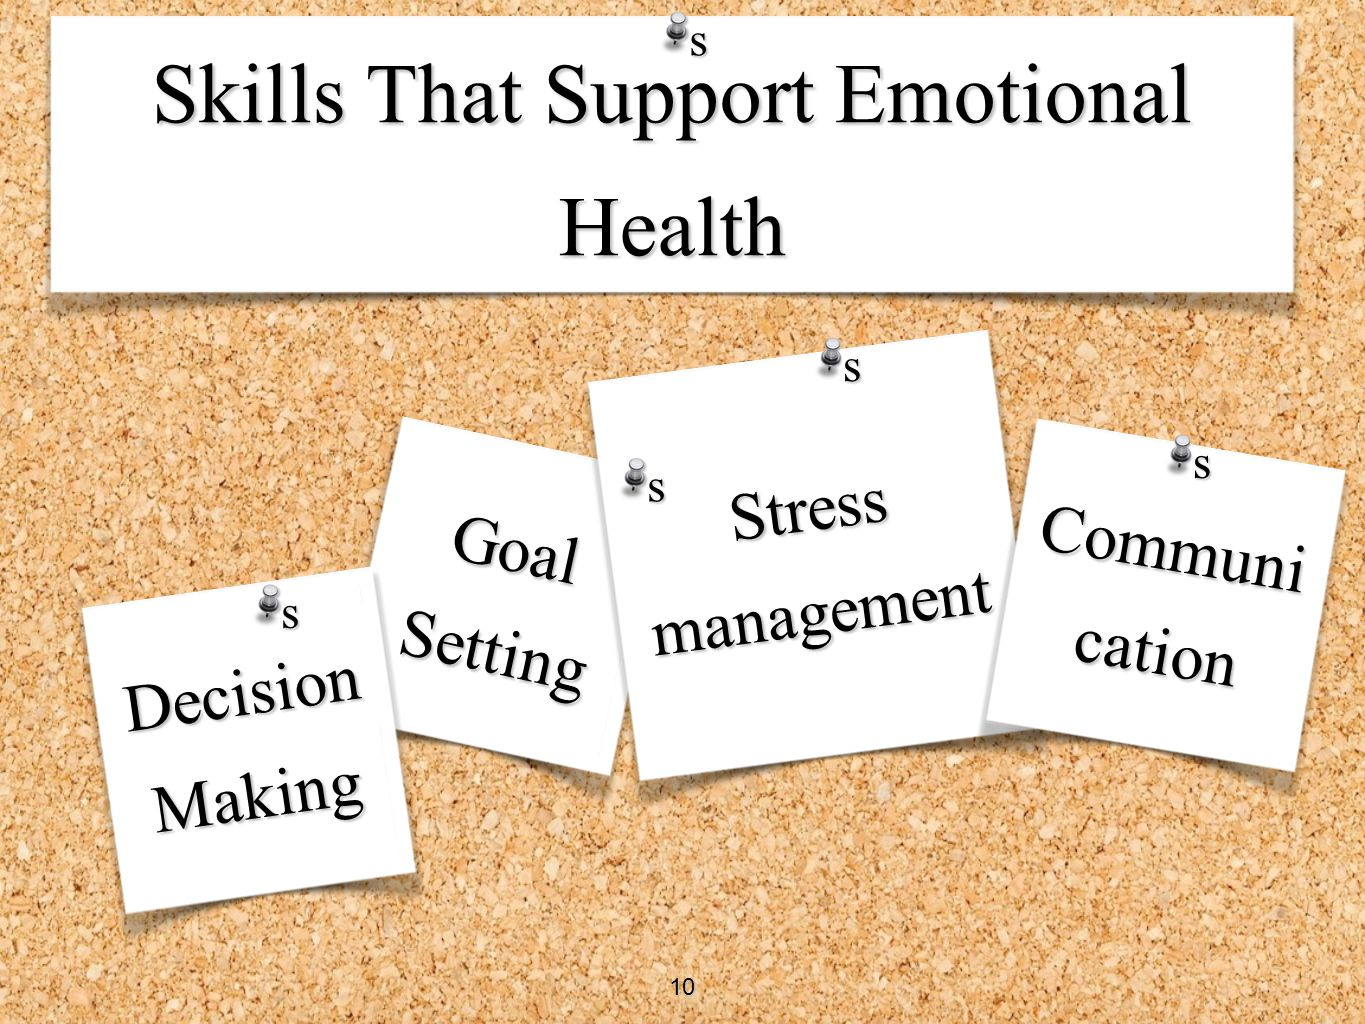 Skills That Support Emotional Health